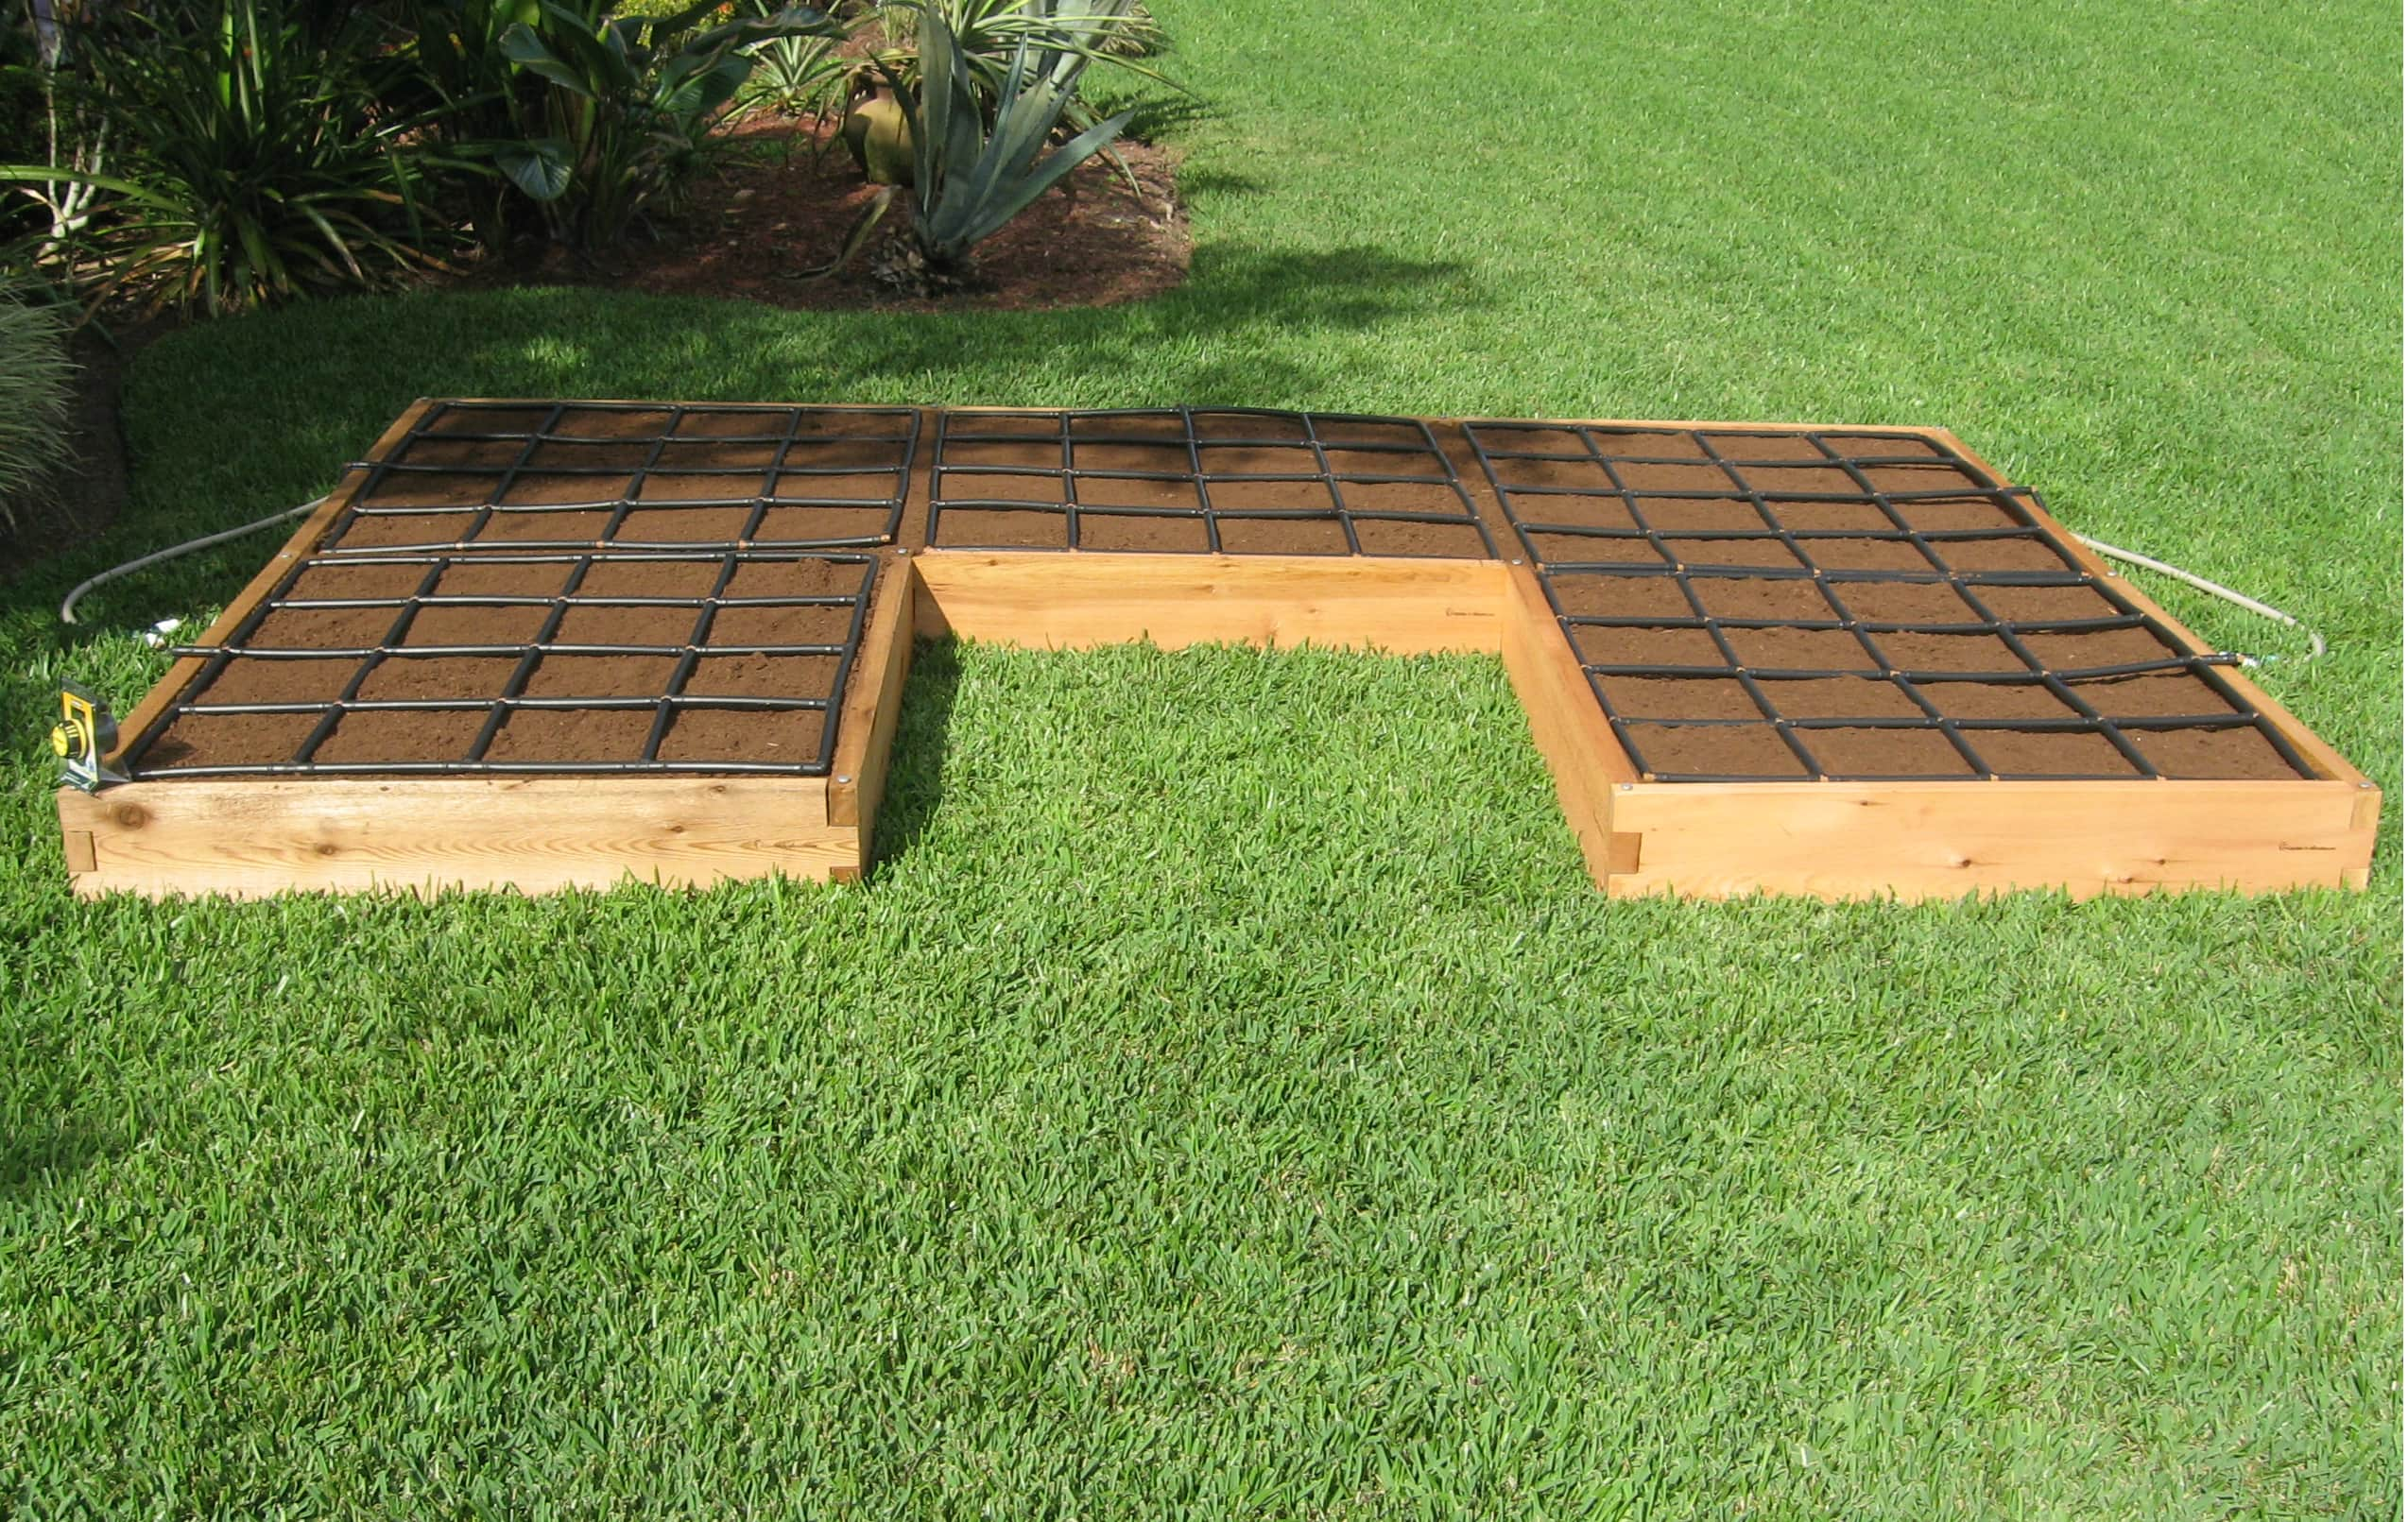 U Shaped Raised Garden Kit With Adjustable Watering System